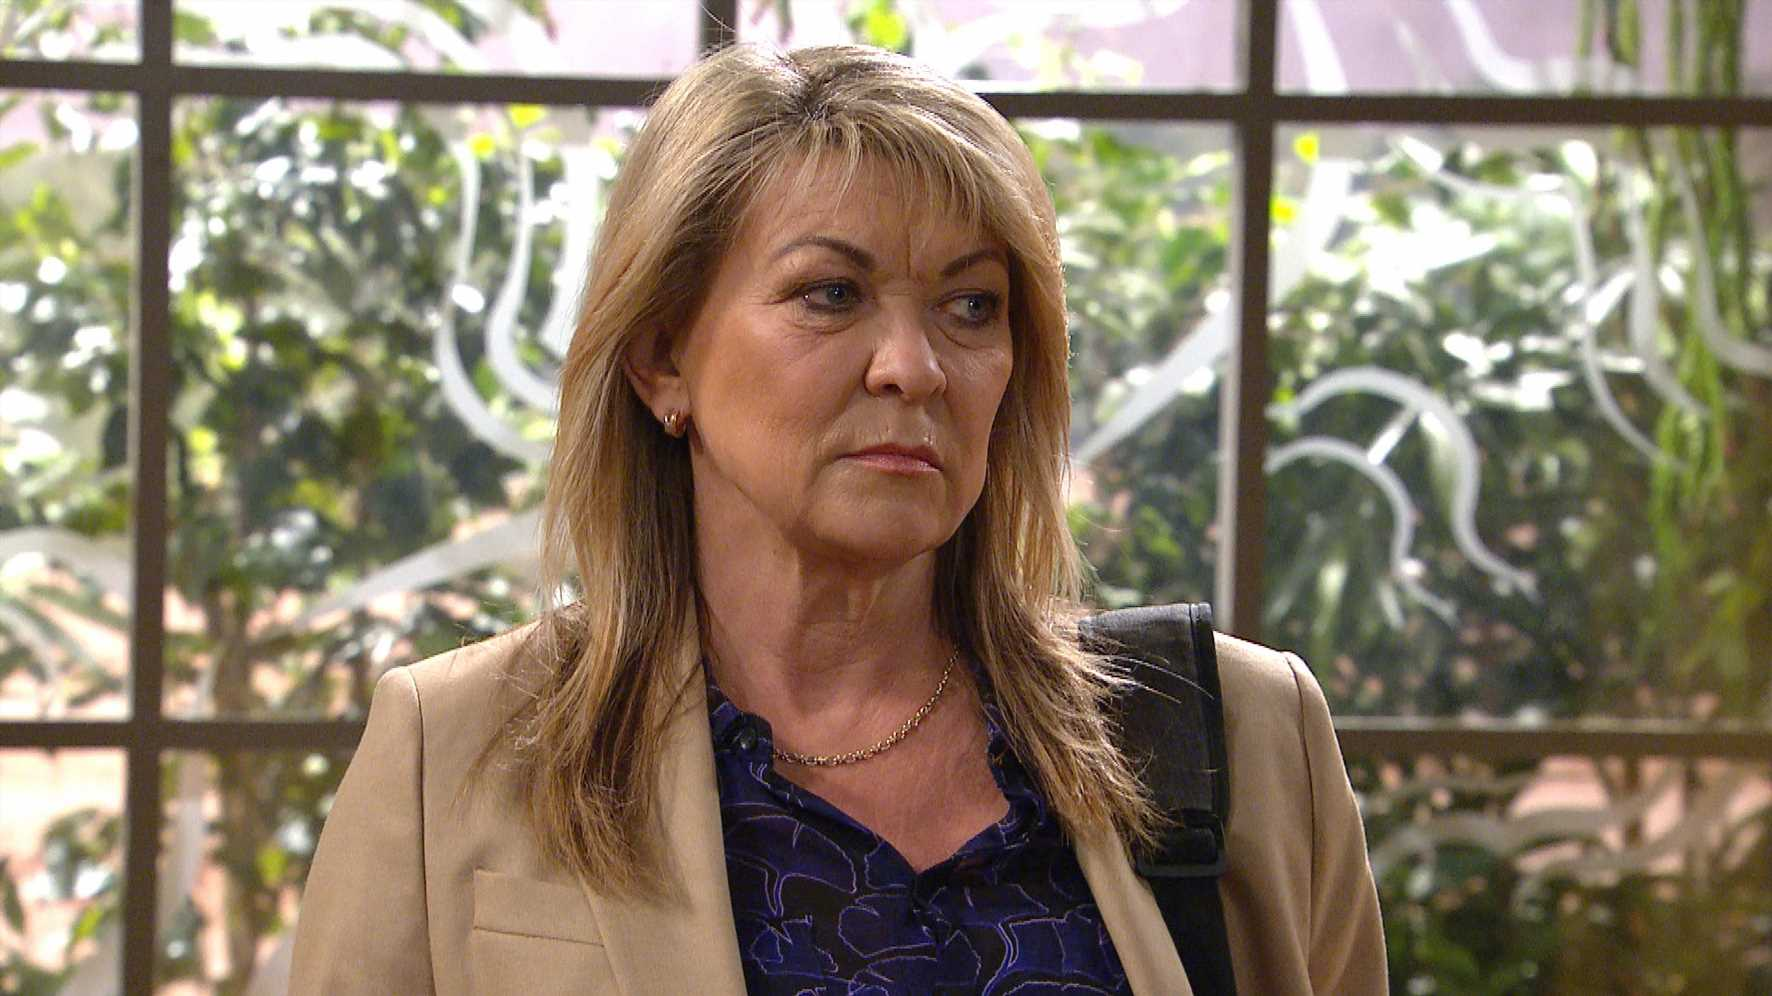 Emmerdale shock as Kim Tate fakes her own death to get revenge on son Jamie for poisoning her